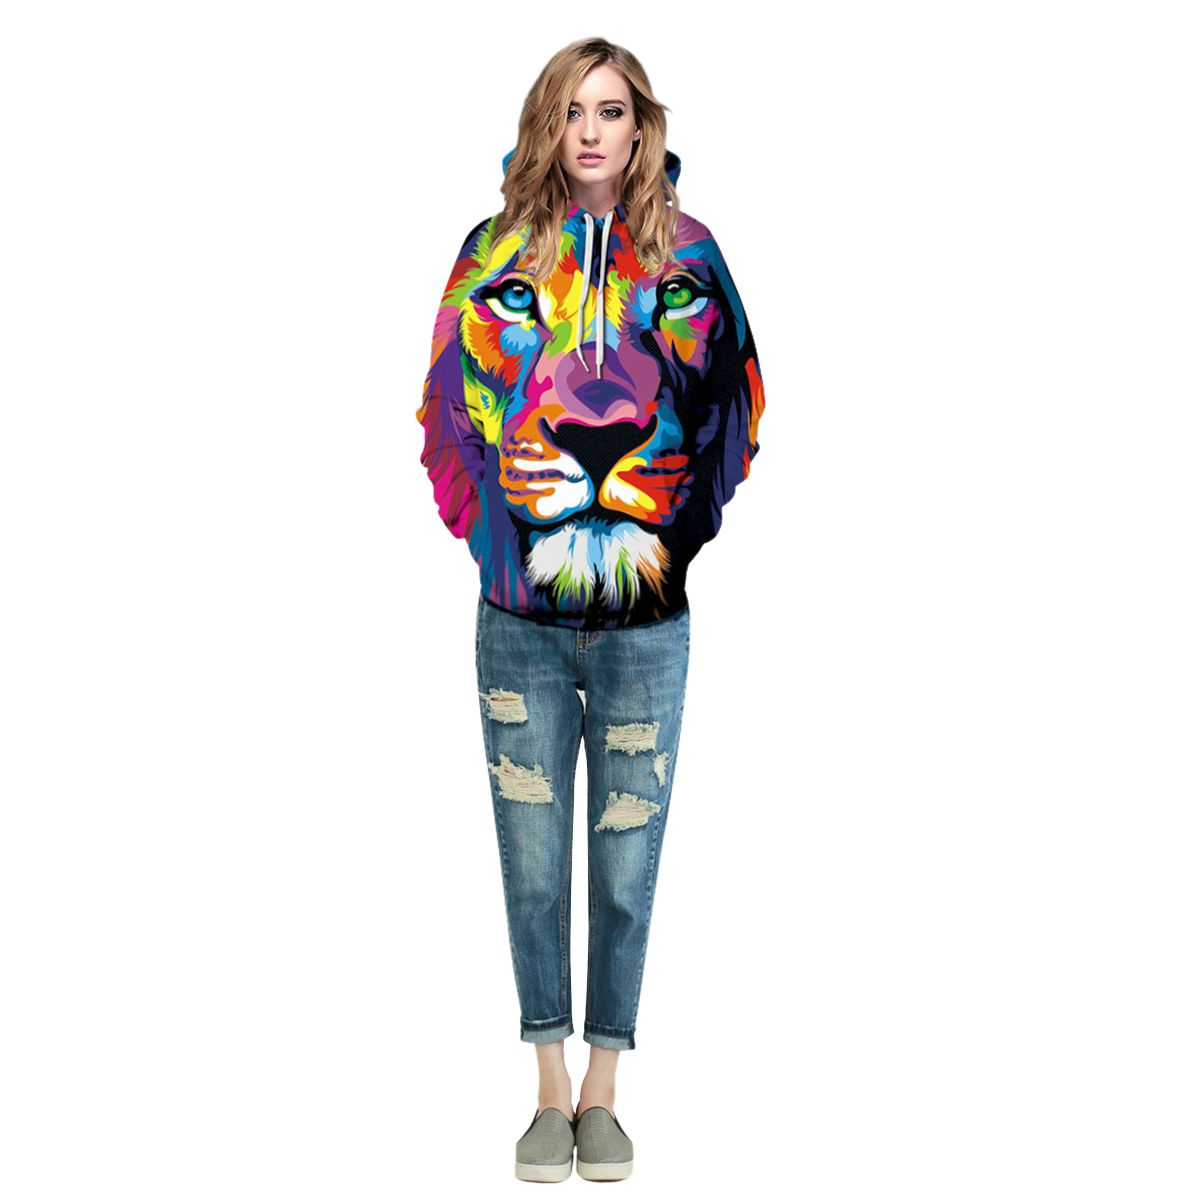 Men/Women New Fashion Colorful Hoodies 3D Printed Paint Animal Lion Sweatshirts Hooded Pullover With Pockets Casual Tops